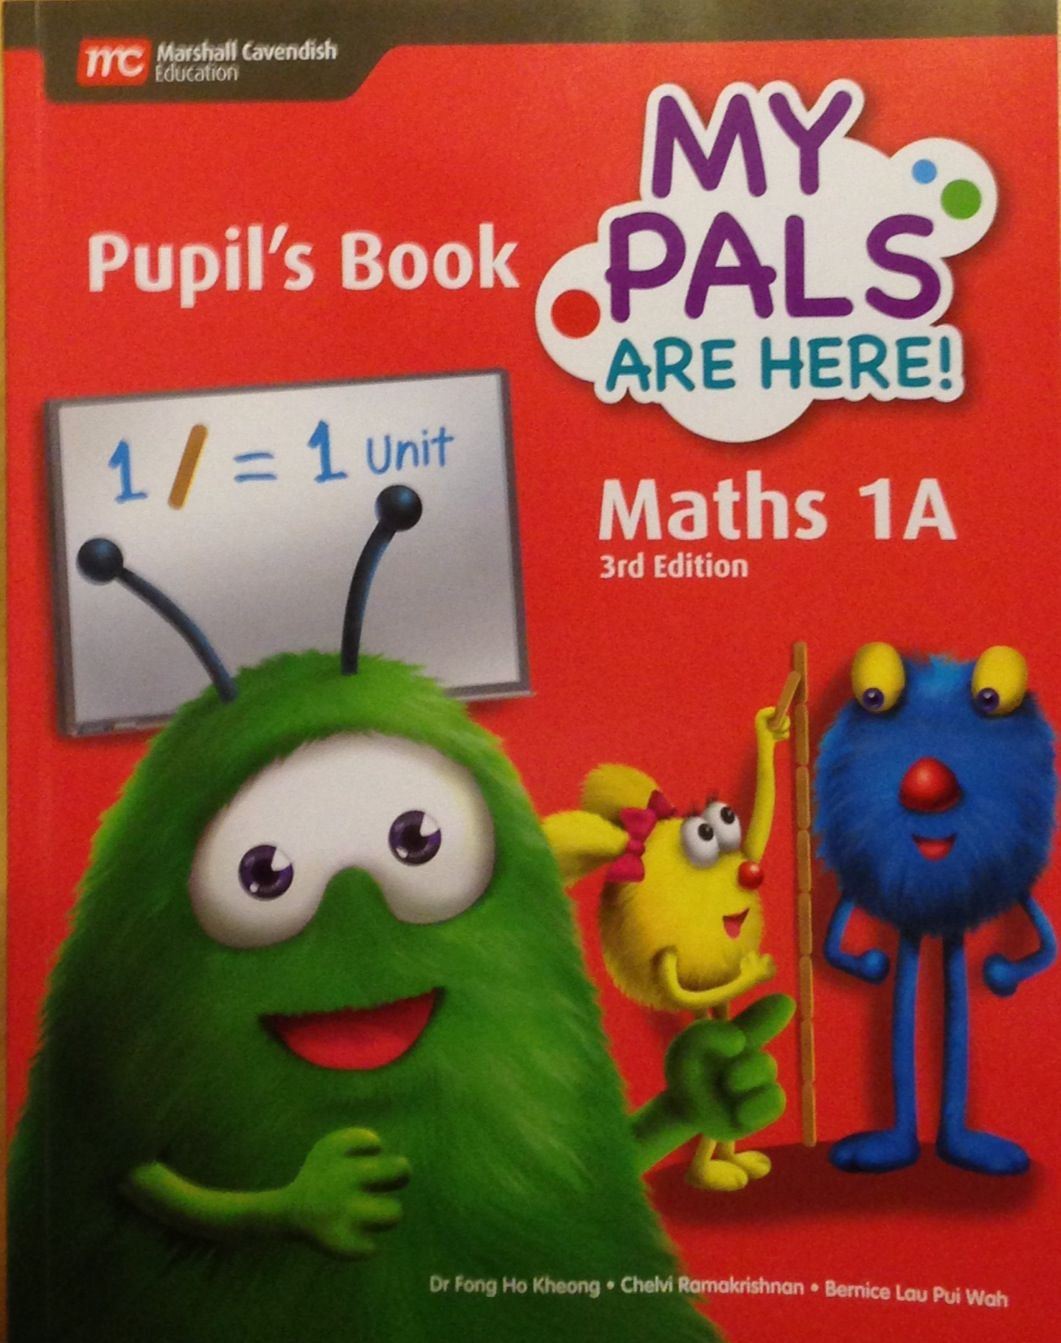 The Latest Grade 1 Textbook Approved By The Ministry Of Education